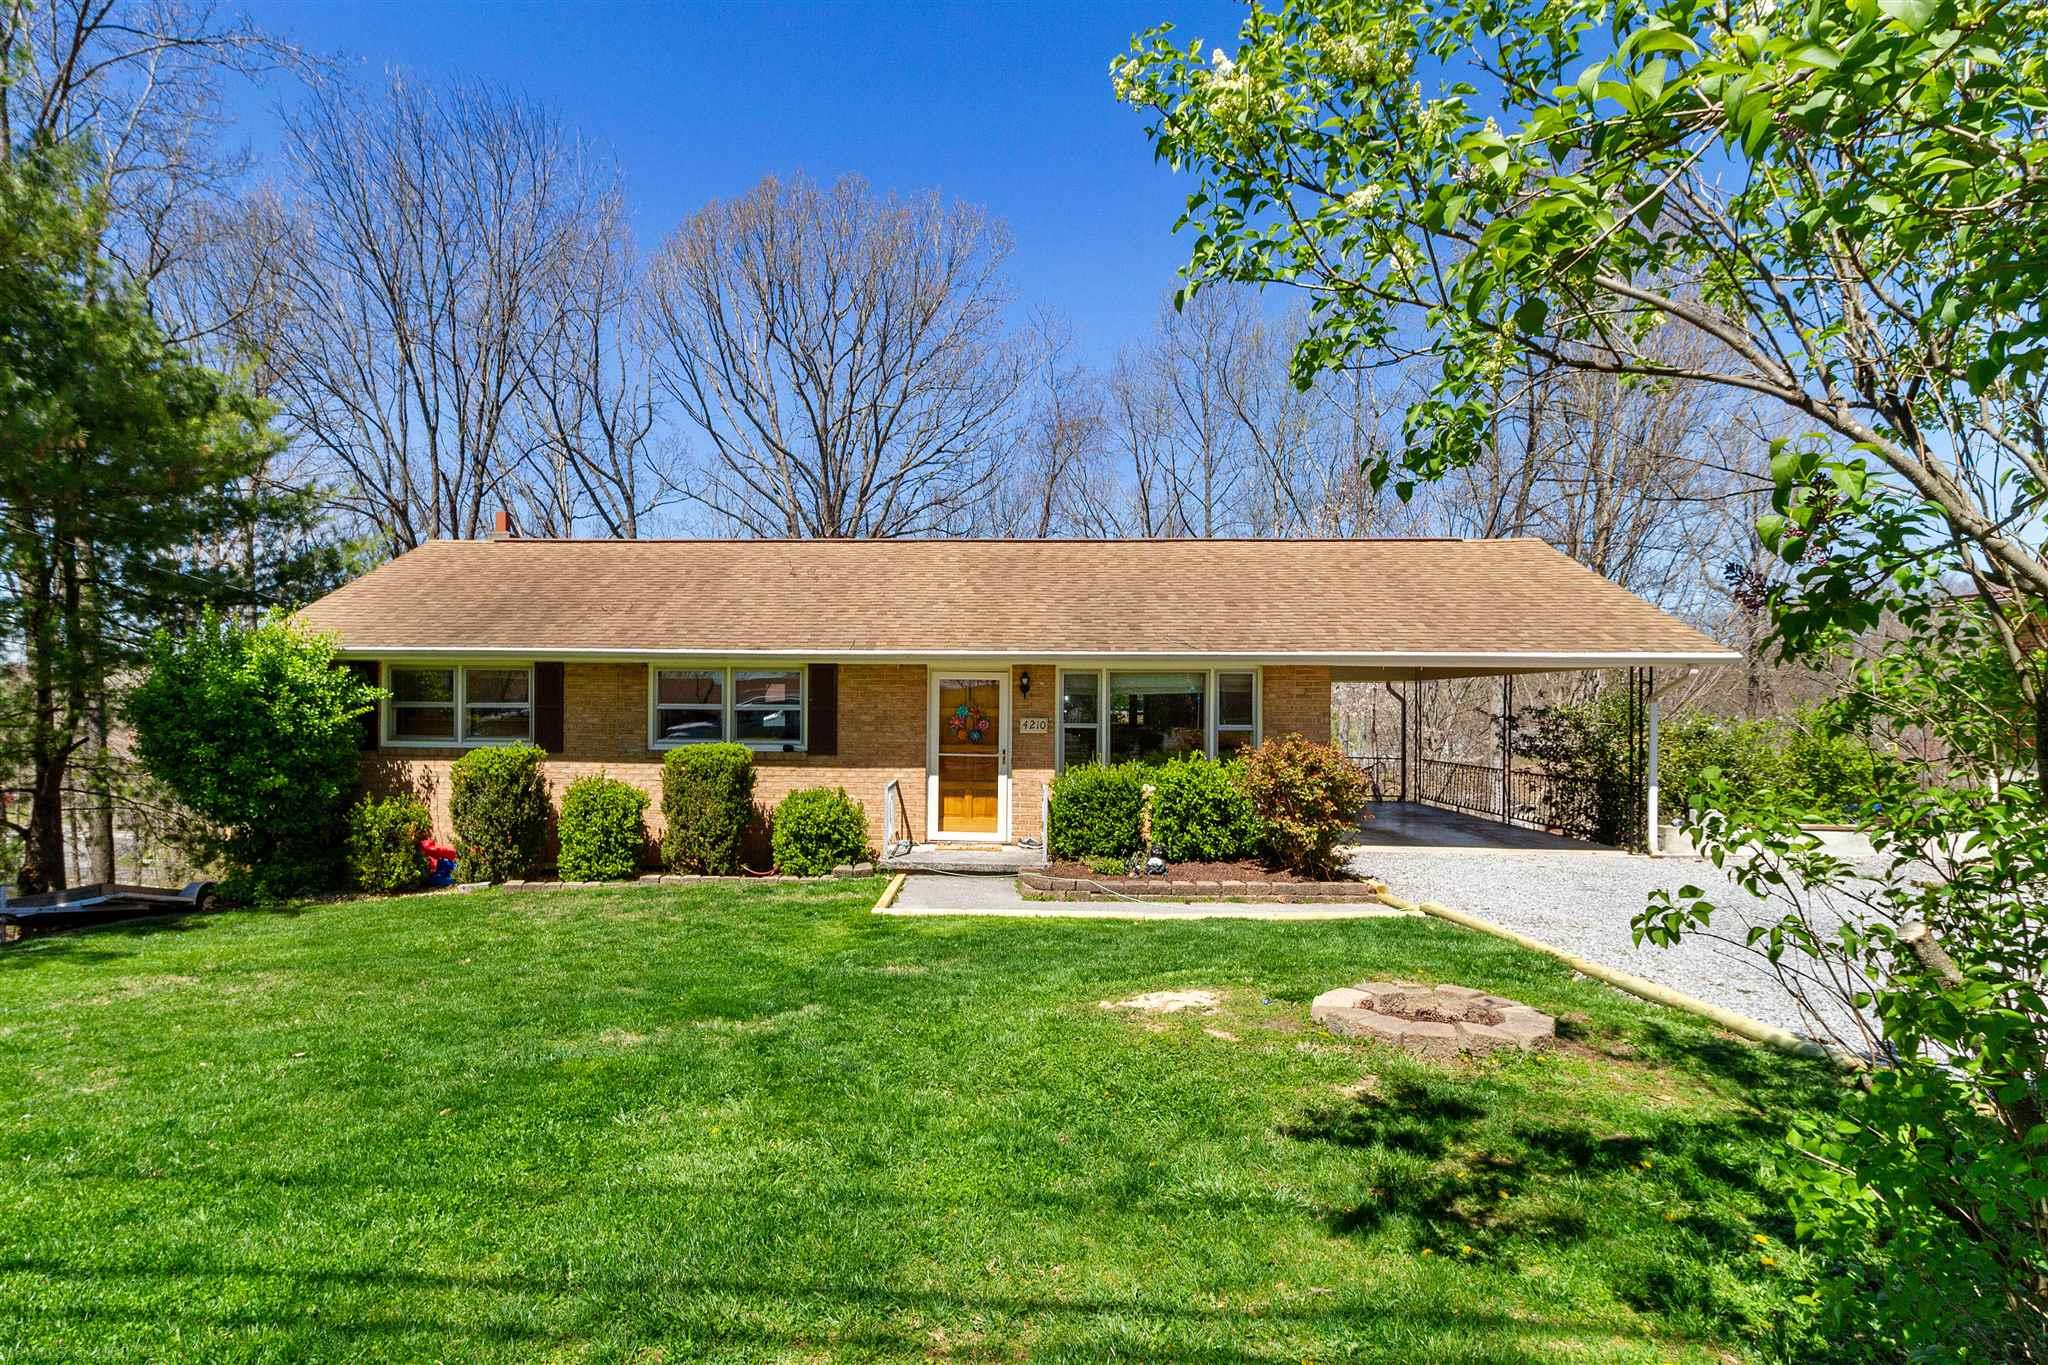 Don't miss this lovely brick ranch in a great location in Christiansburg: convenient to 460, I-81 and just 9 miles to Blacksburg. The full basement is finished with a great den or spare bedroom space, built in bar, and tons of storage! The open kitchen/dining area has a new electric range and overhead microwave that were installed in 2019. This home has a beautiful flat front yard, a partially covered back deck off of the dining room & kitchen that overlooks the backyard, and an enclosed patio with a hot tub perfect for a relaxing evening! The hot tub is only 3 years old and fits 5-6 people. The hardwood floors on the main level were refinished in 2018, the Heat Pump was replaced in 2014 and the hot water heater was replaced in 2019. In 2019, home was also connected to town sewer - a great upgrade! The gas logs in the basement convey along with two propane tanks.